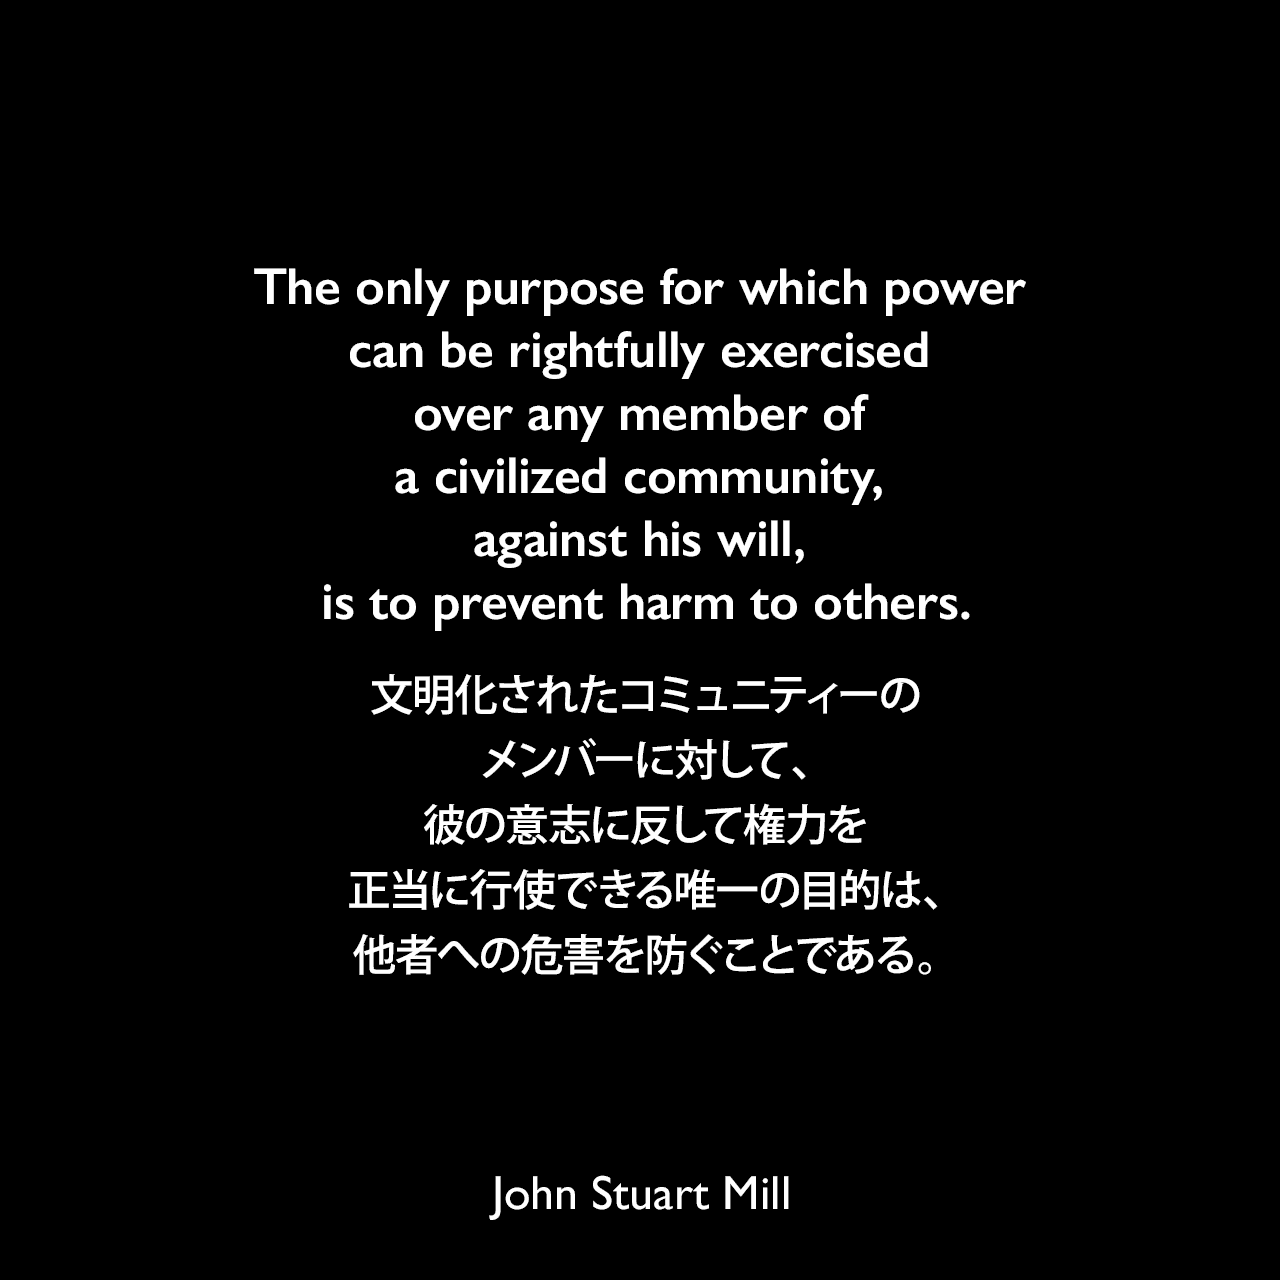 The only purpose for which power can be rightfully exercised over any member of a civilized community, against his will, is to prevent harm to others.文明化されたコミュニティーのメンバーに対して、彼の意志に反して権力を正当に行使できる唯一の目的は、他者への危害を防ぐことである。- ジョン・スチュアート・ミルによる本「自由論」よりJohn Stuart Mill